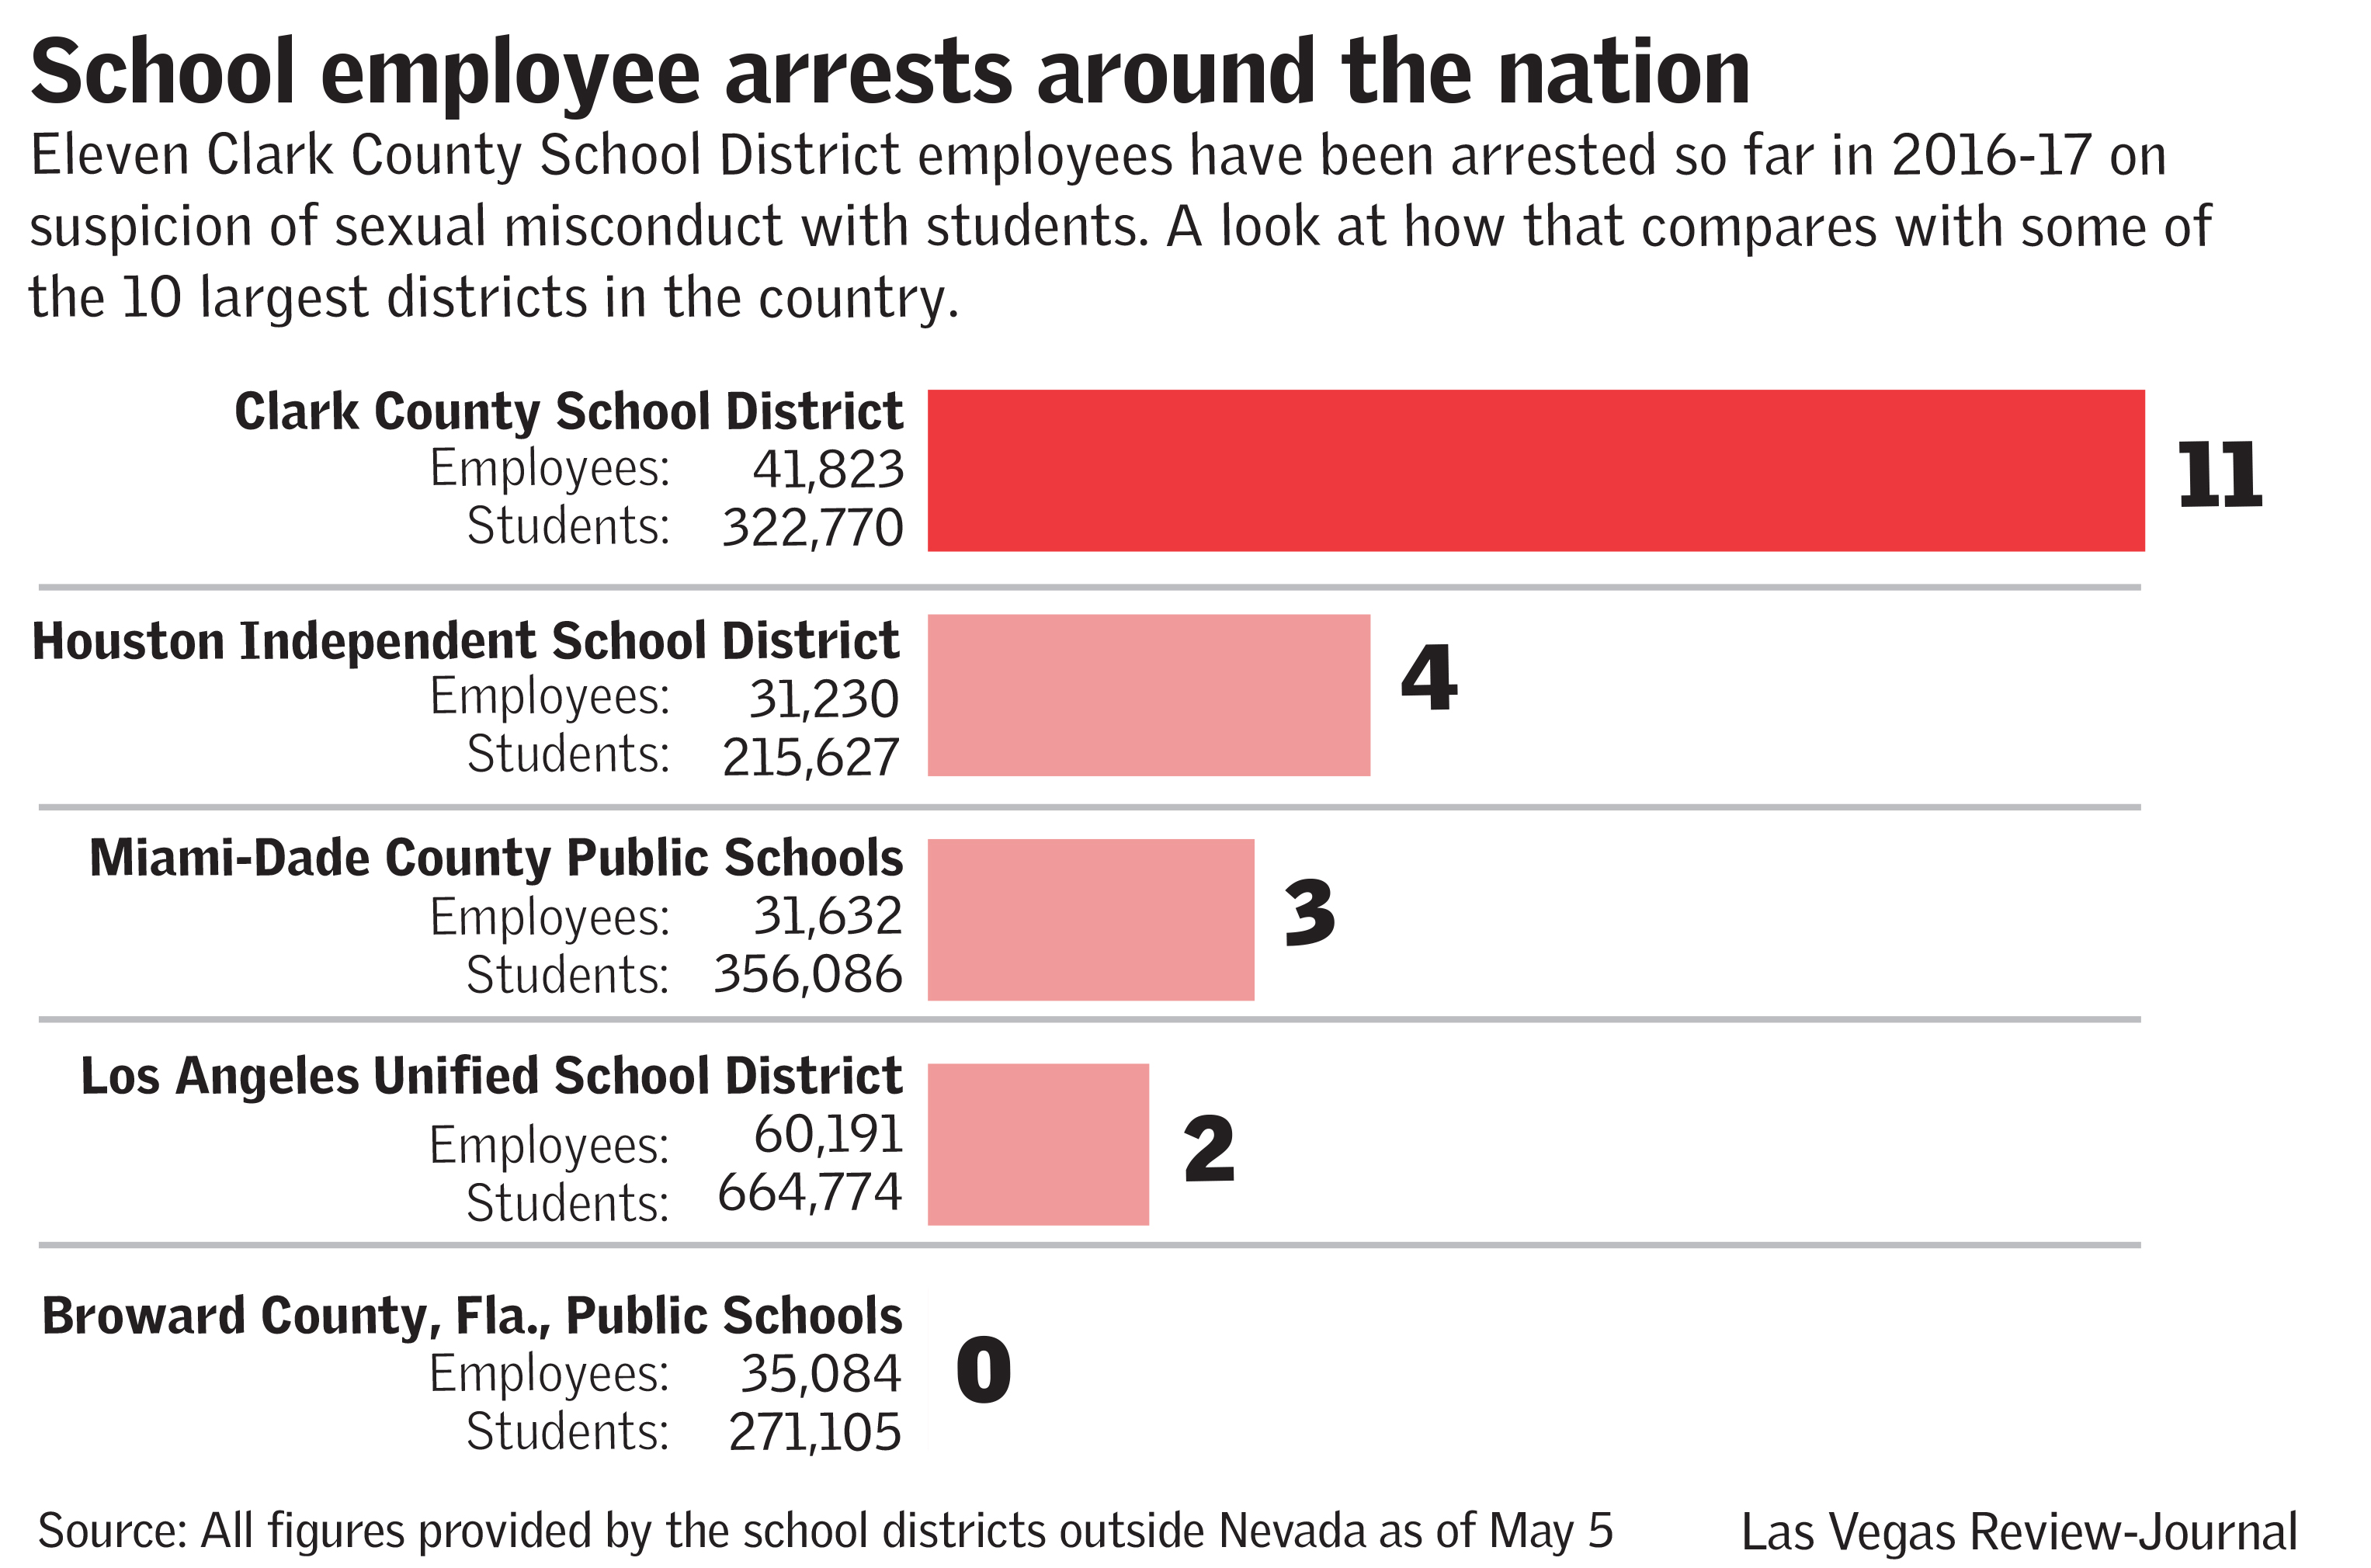 School employee arrests around the nation las vegas review journal